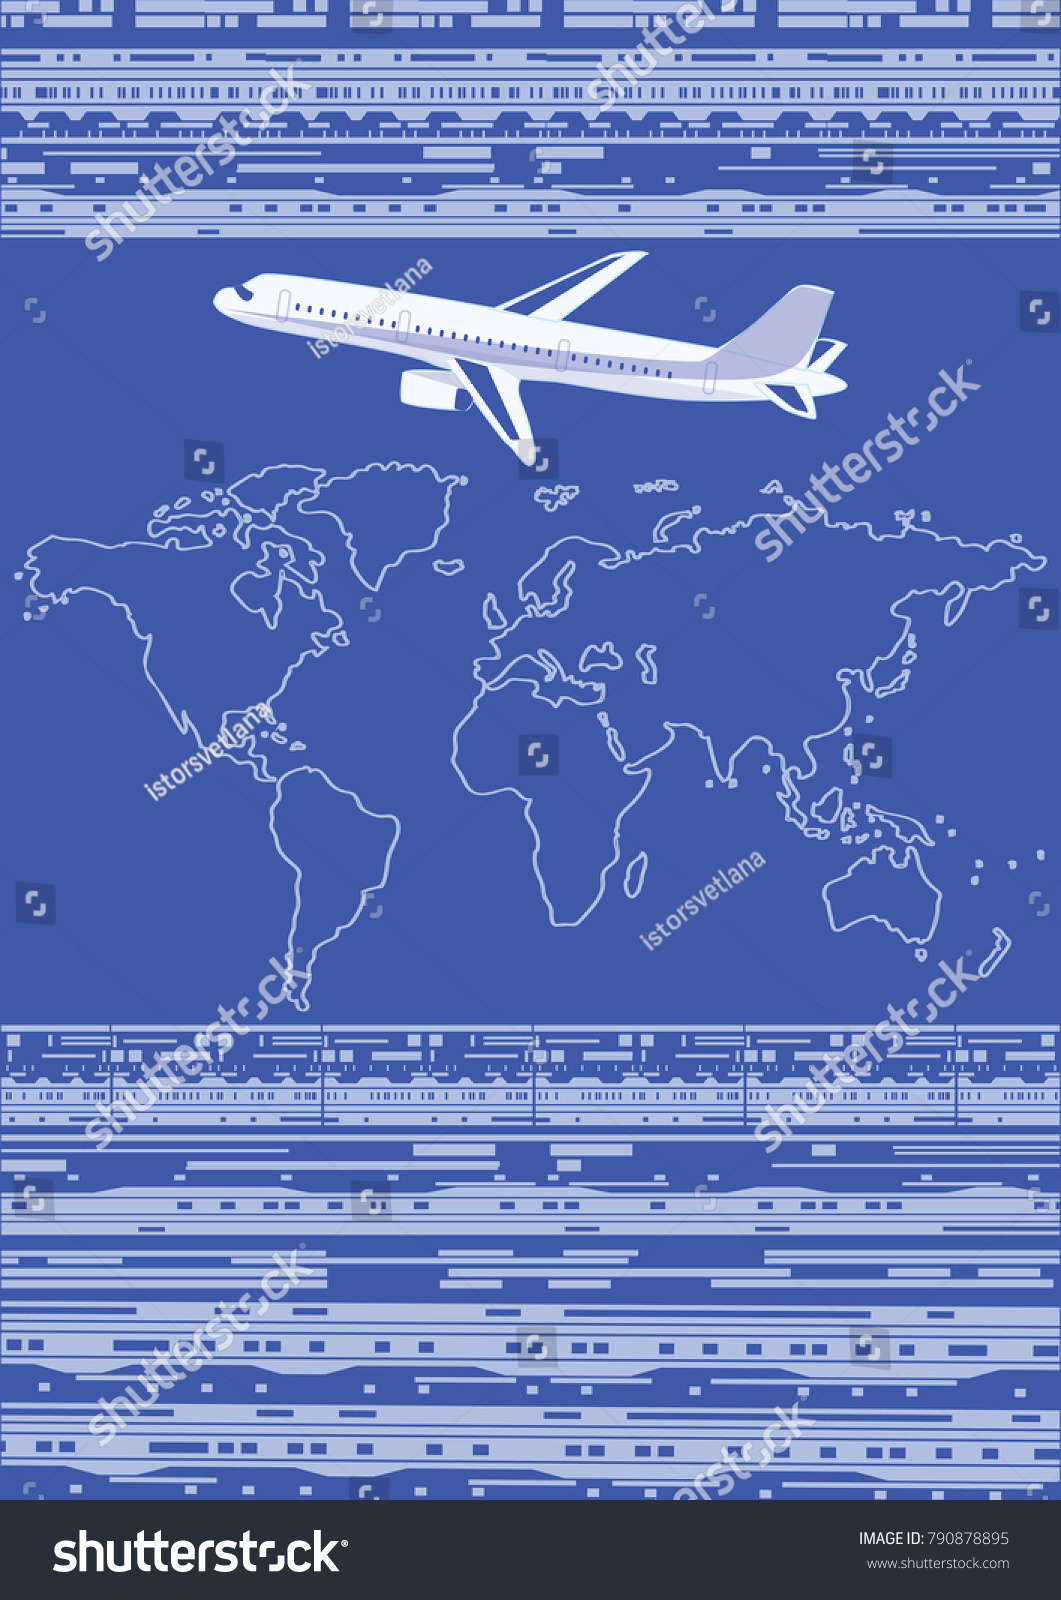 Airplane world map abstract dark background stock vector 790878895 airplane world map abstract dark background with the symbol of information technology art biocorpaavc Images